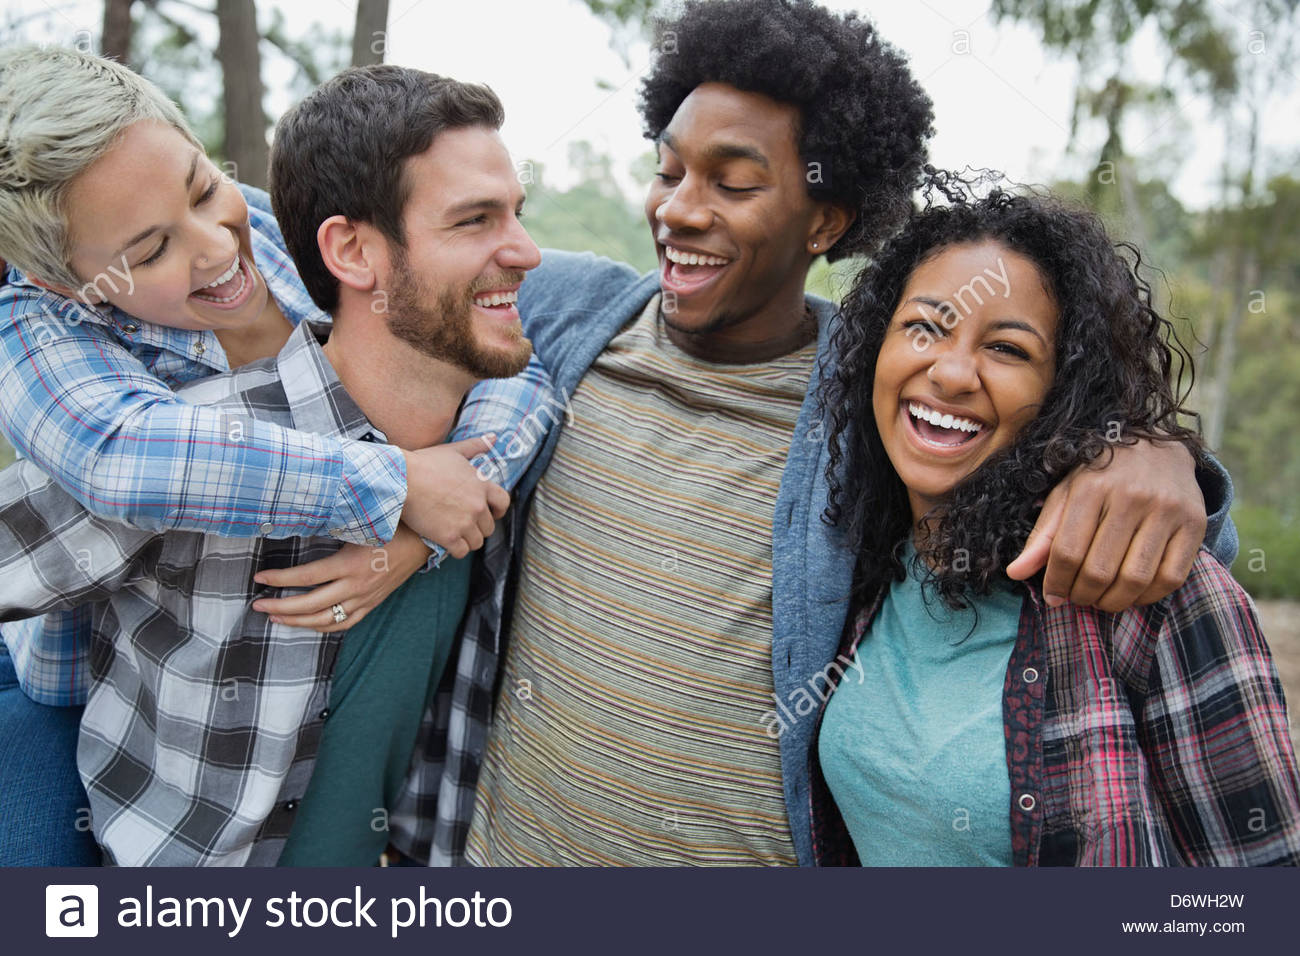 Group of friends having fun together in forest - Stock Image